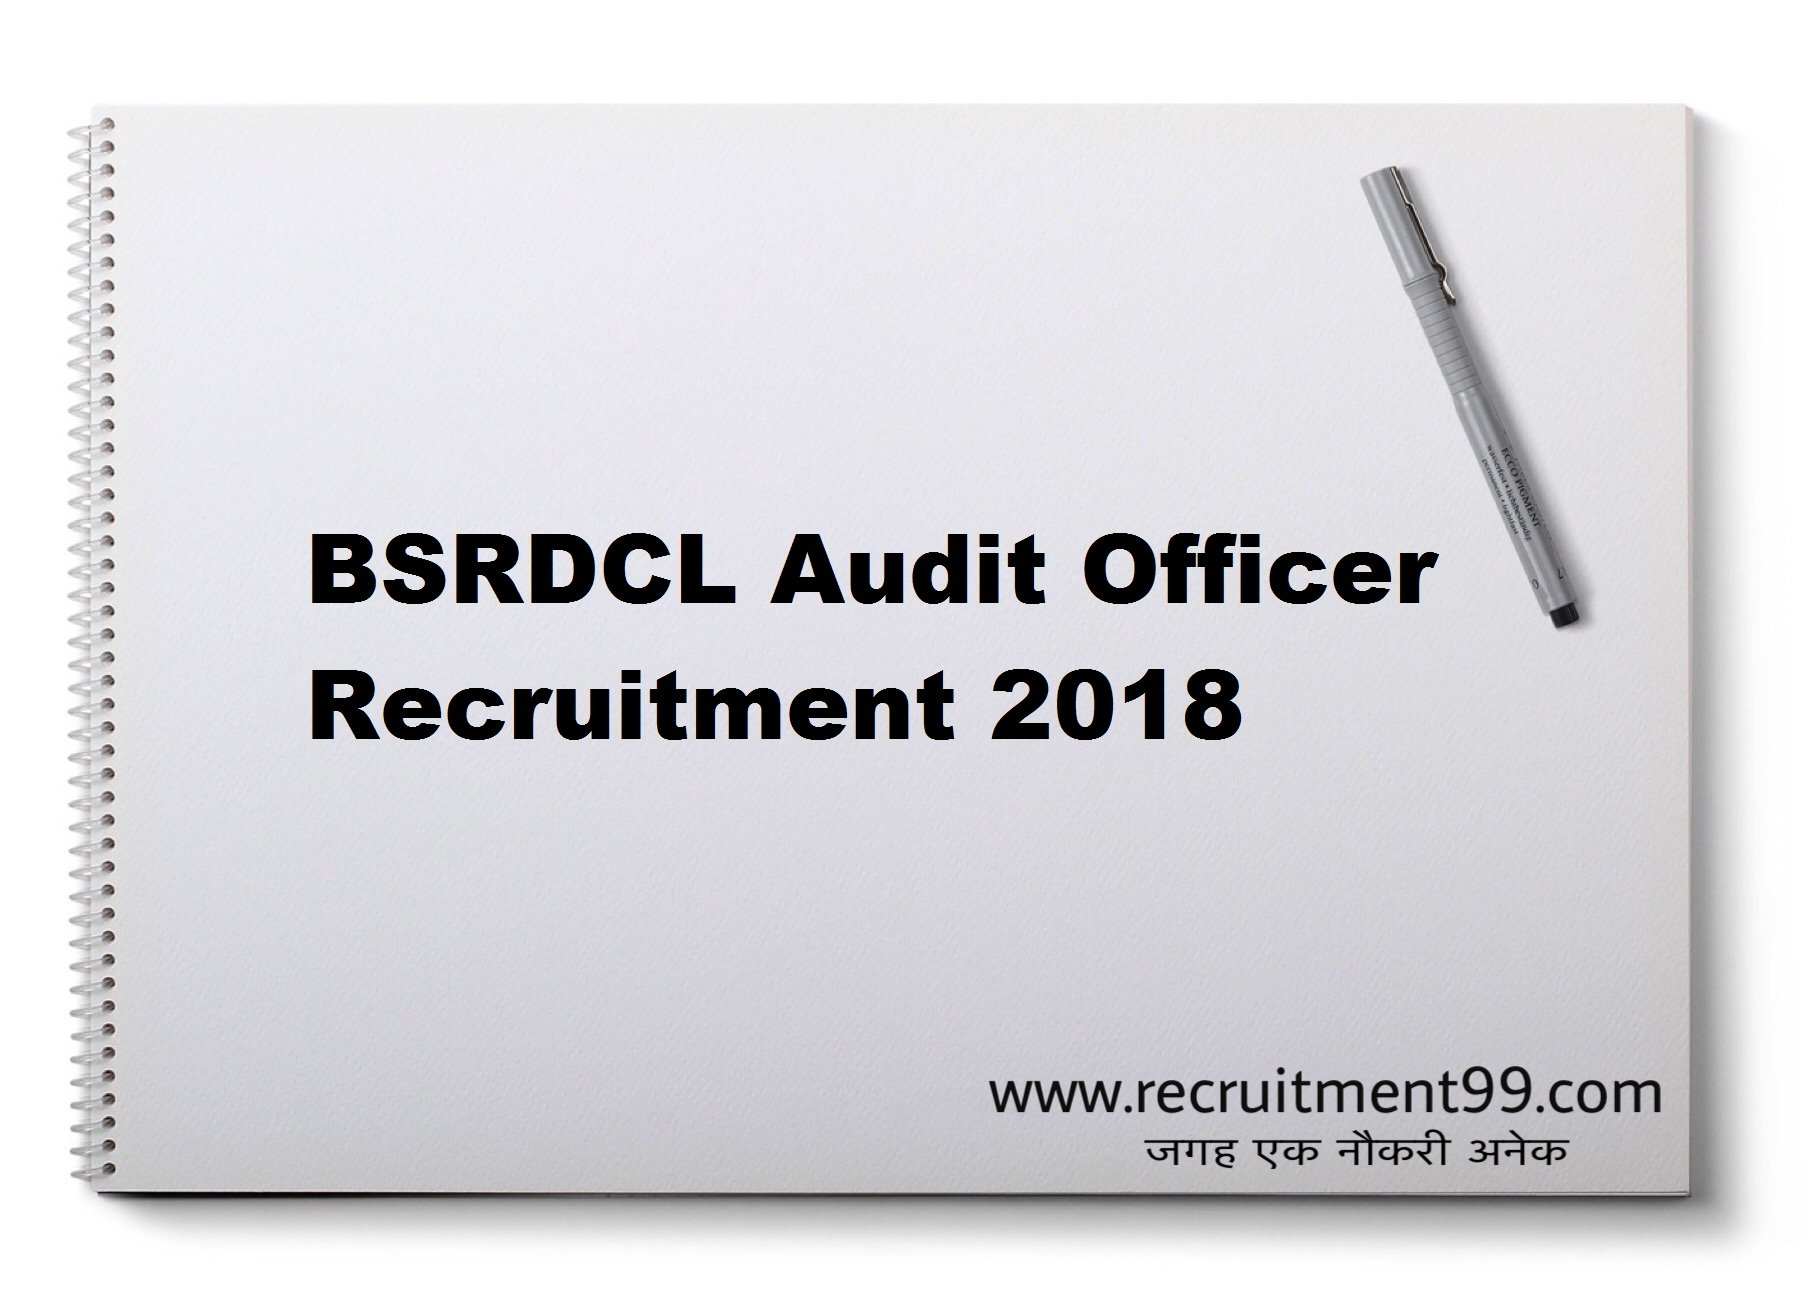 BSRDCL Audit Officer Recruitment Admit Card Result 2018